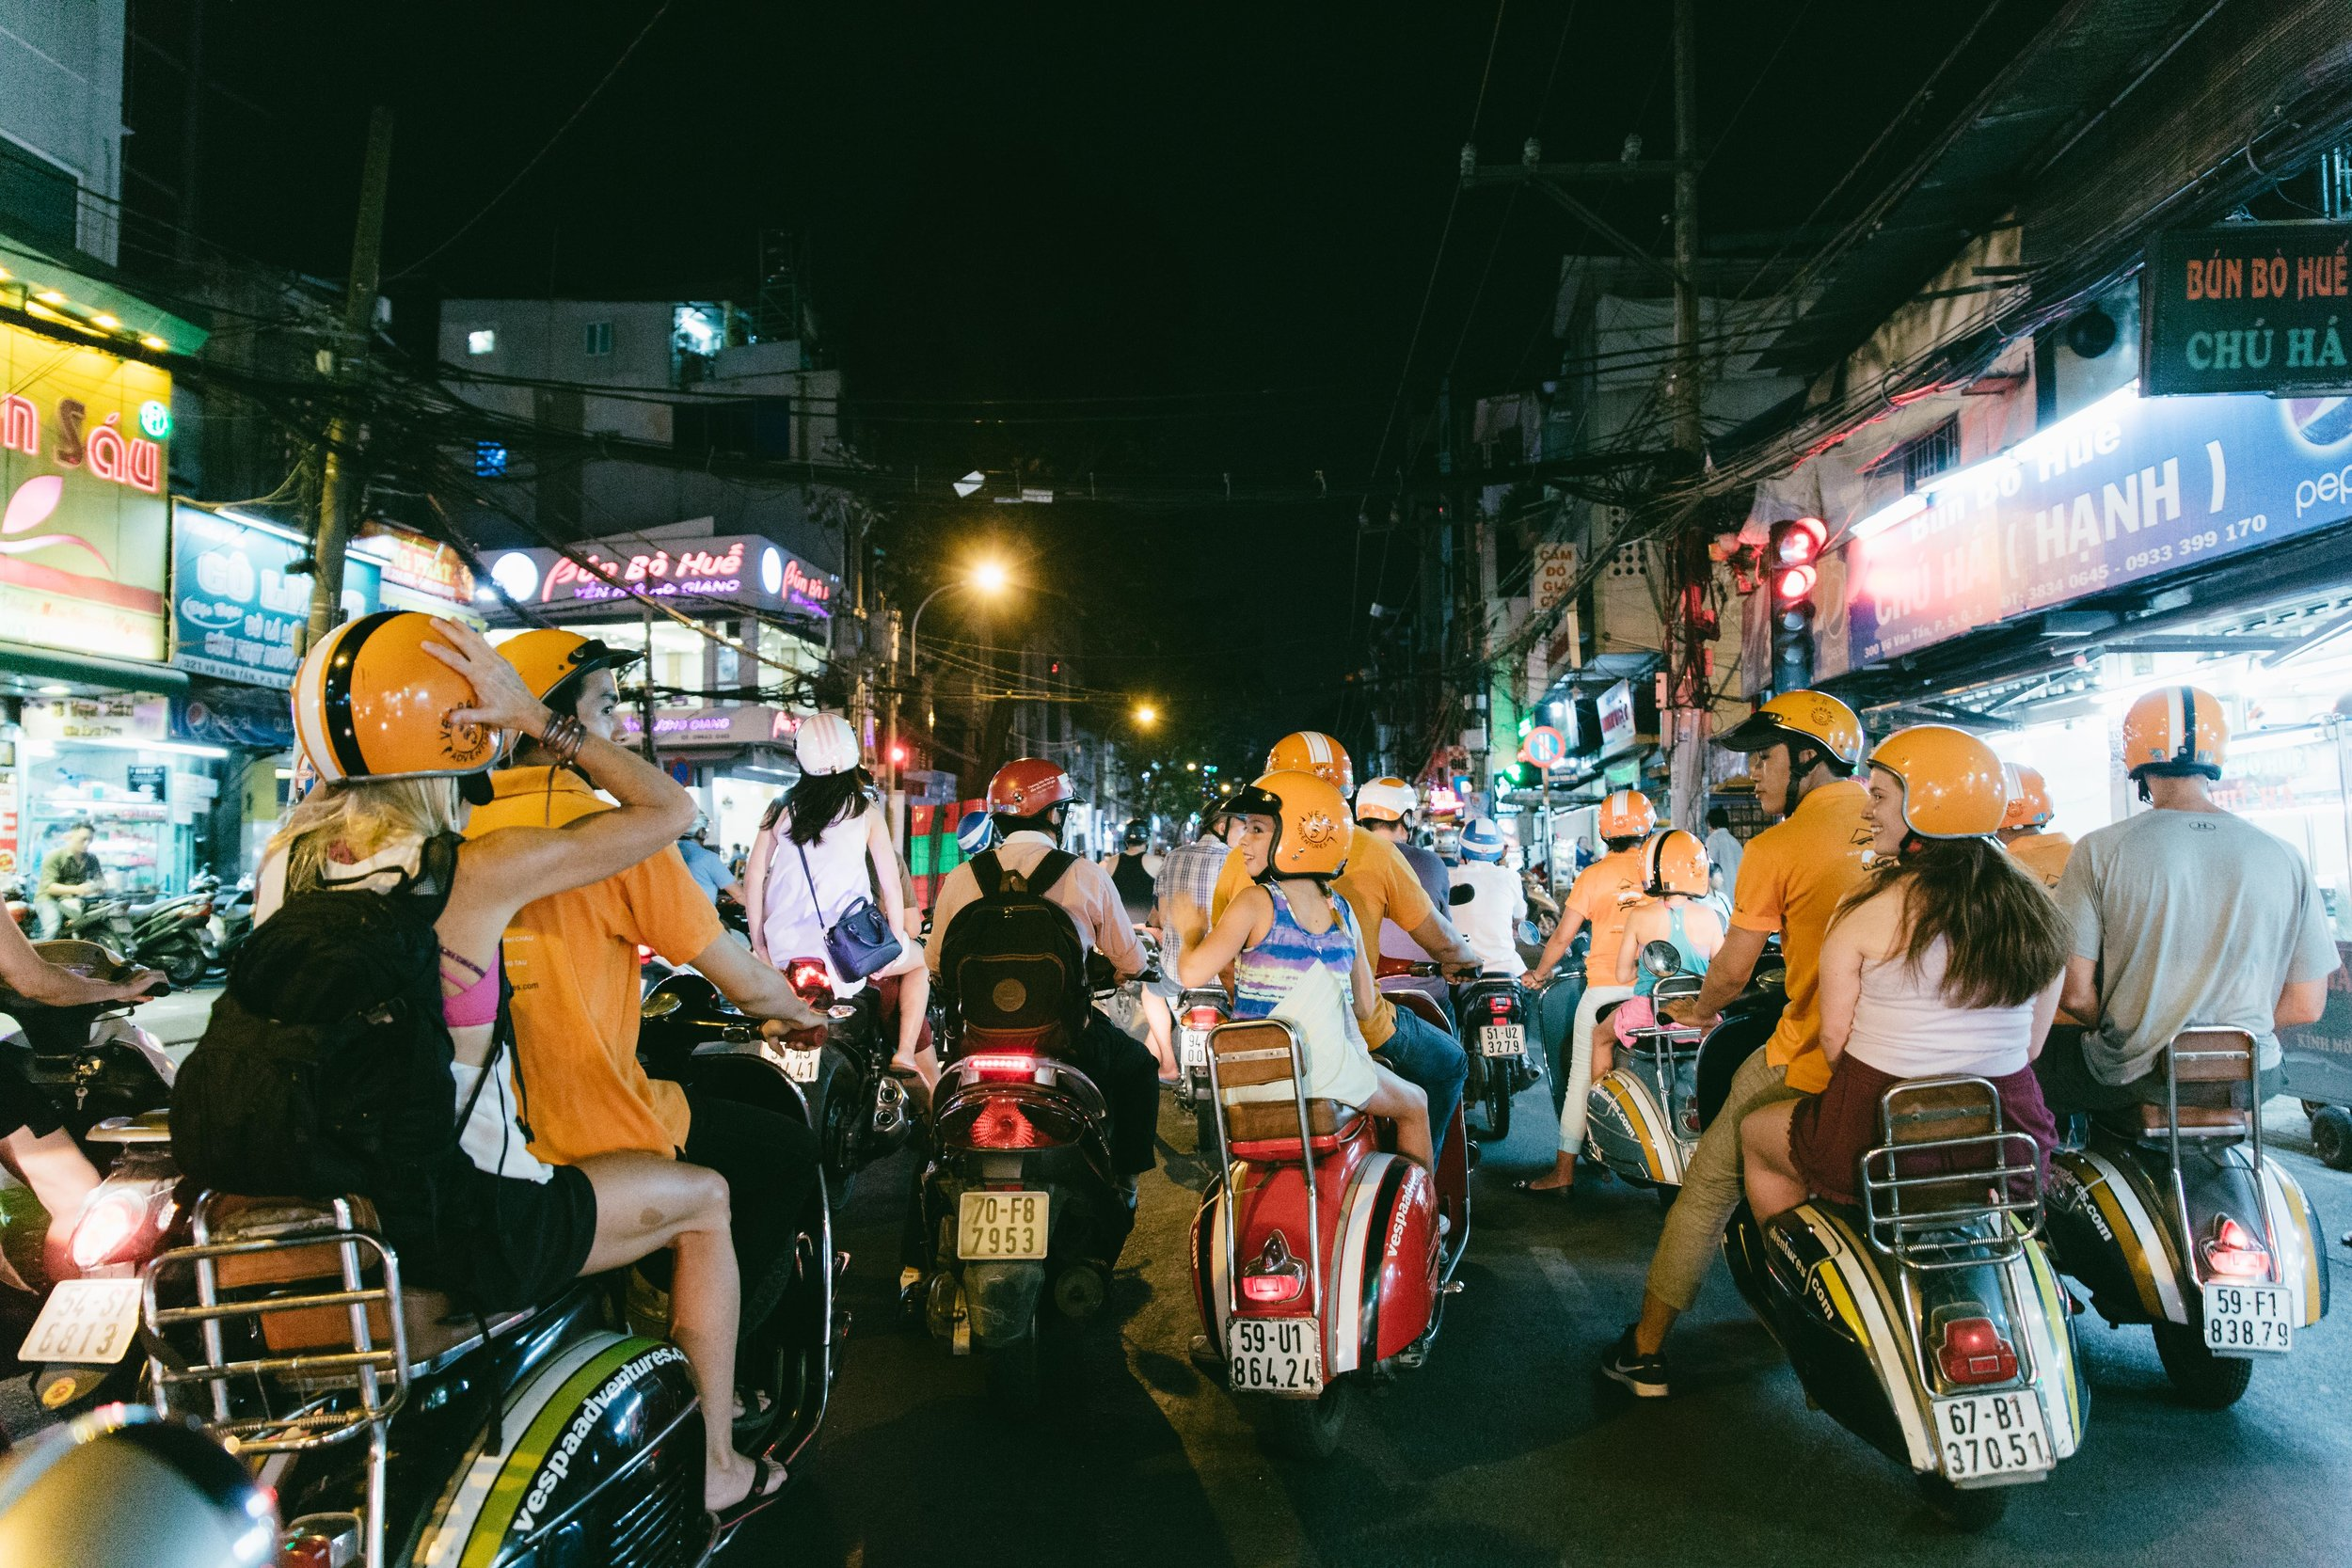 What better way to take in the sights, sounds, and feel of a new city then to hop the back of 6 scooters for a  tour of Saigon after dark. In a city with over 10 million people and 8 million scooters, it is pretty much the only option to get around. We spent the evening trying local street food, seeing famous landmarks, and laughing constantly as we zigged and zagged all over the city.  At this red light, we share a laugh, tighten our helmets and do a quick head count to make sure we have everyone!